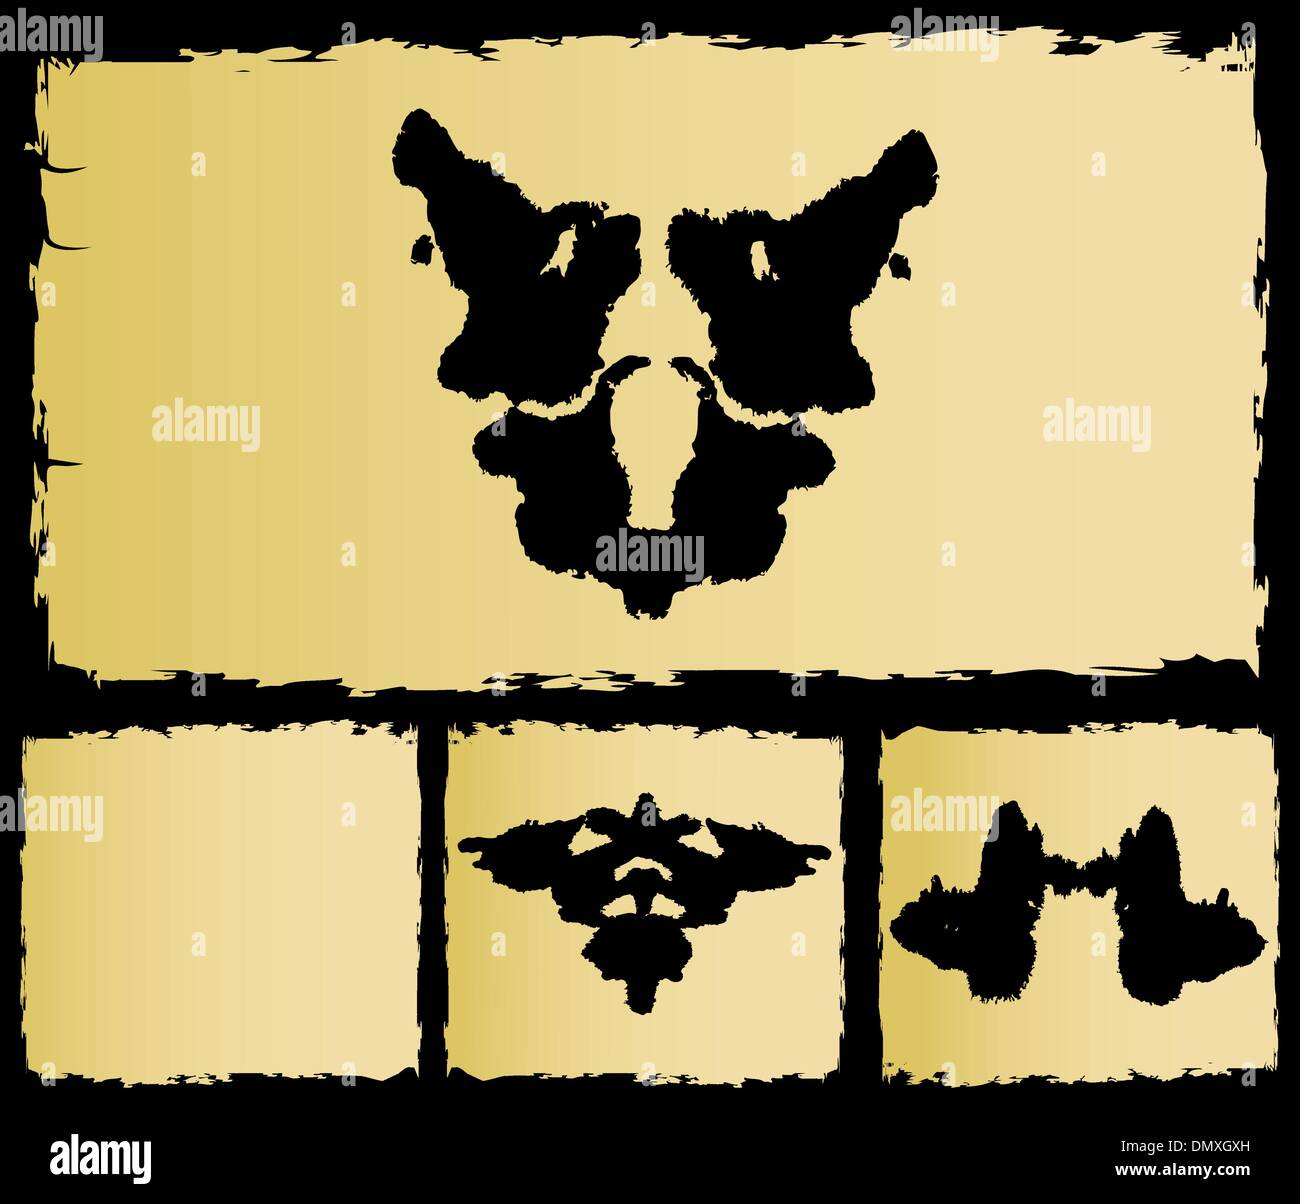 the test rorschach set image - Stock Image